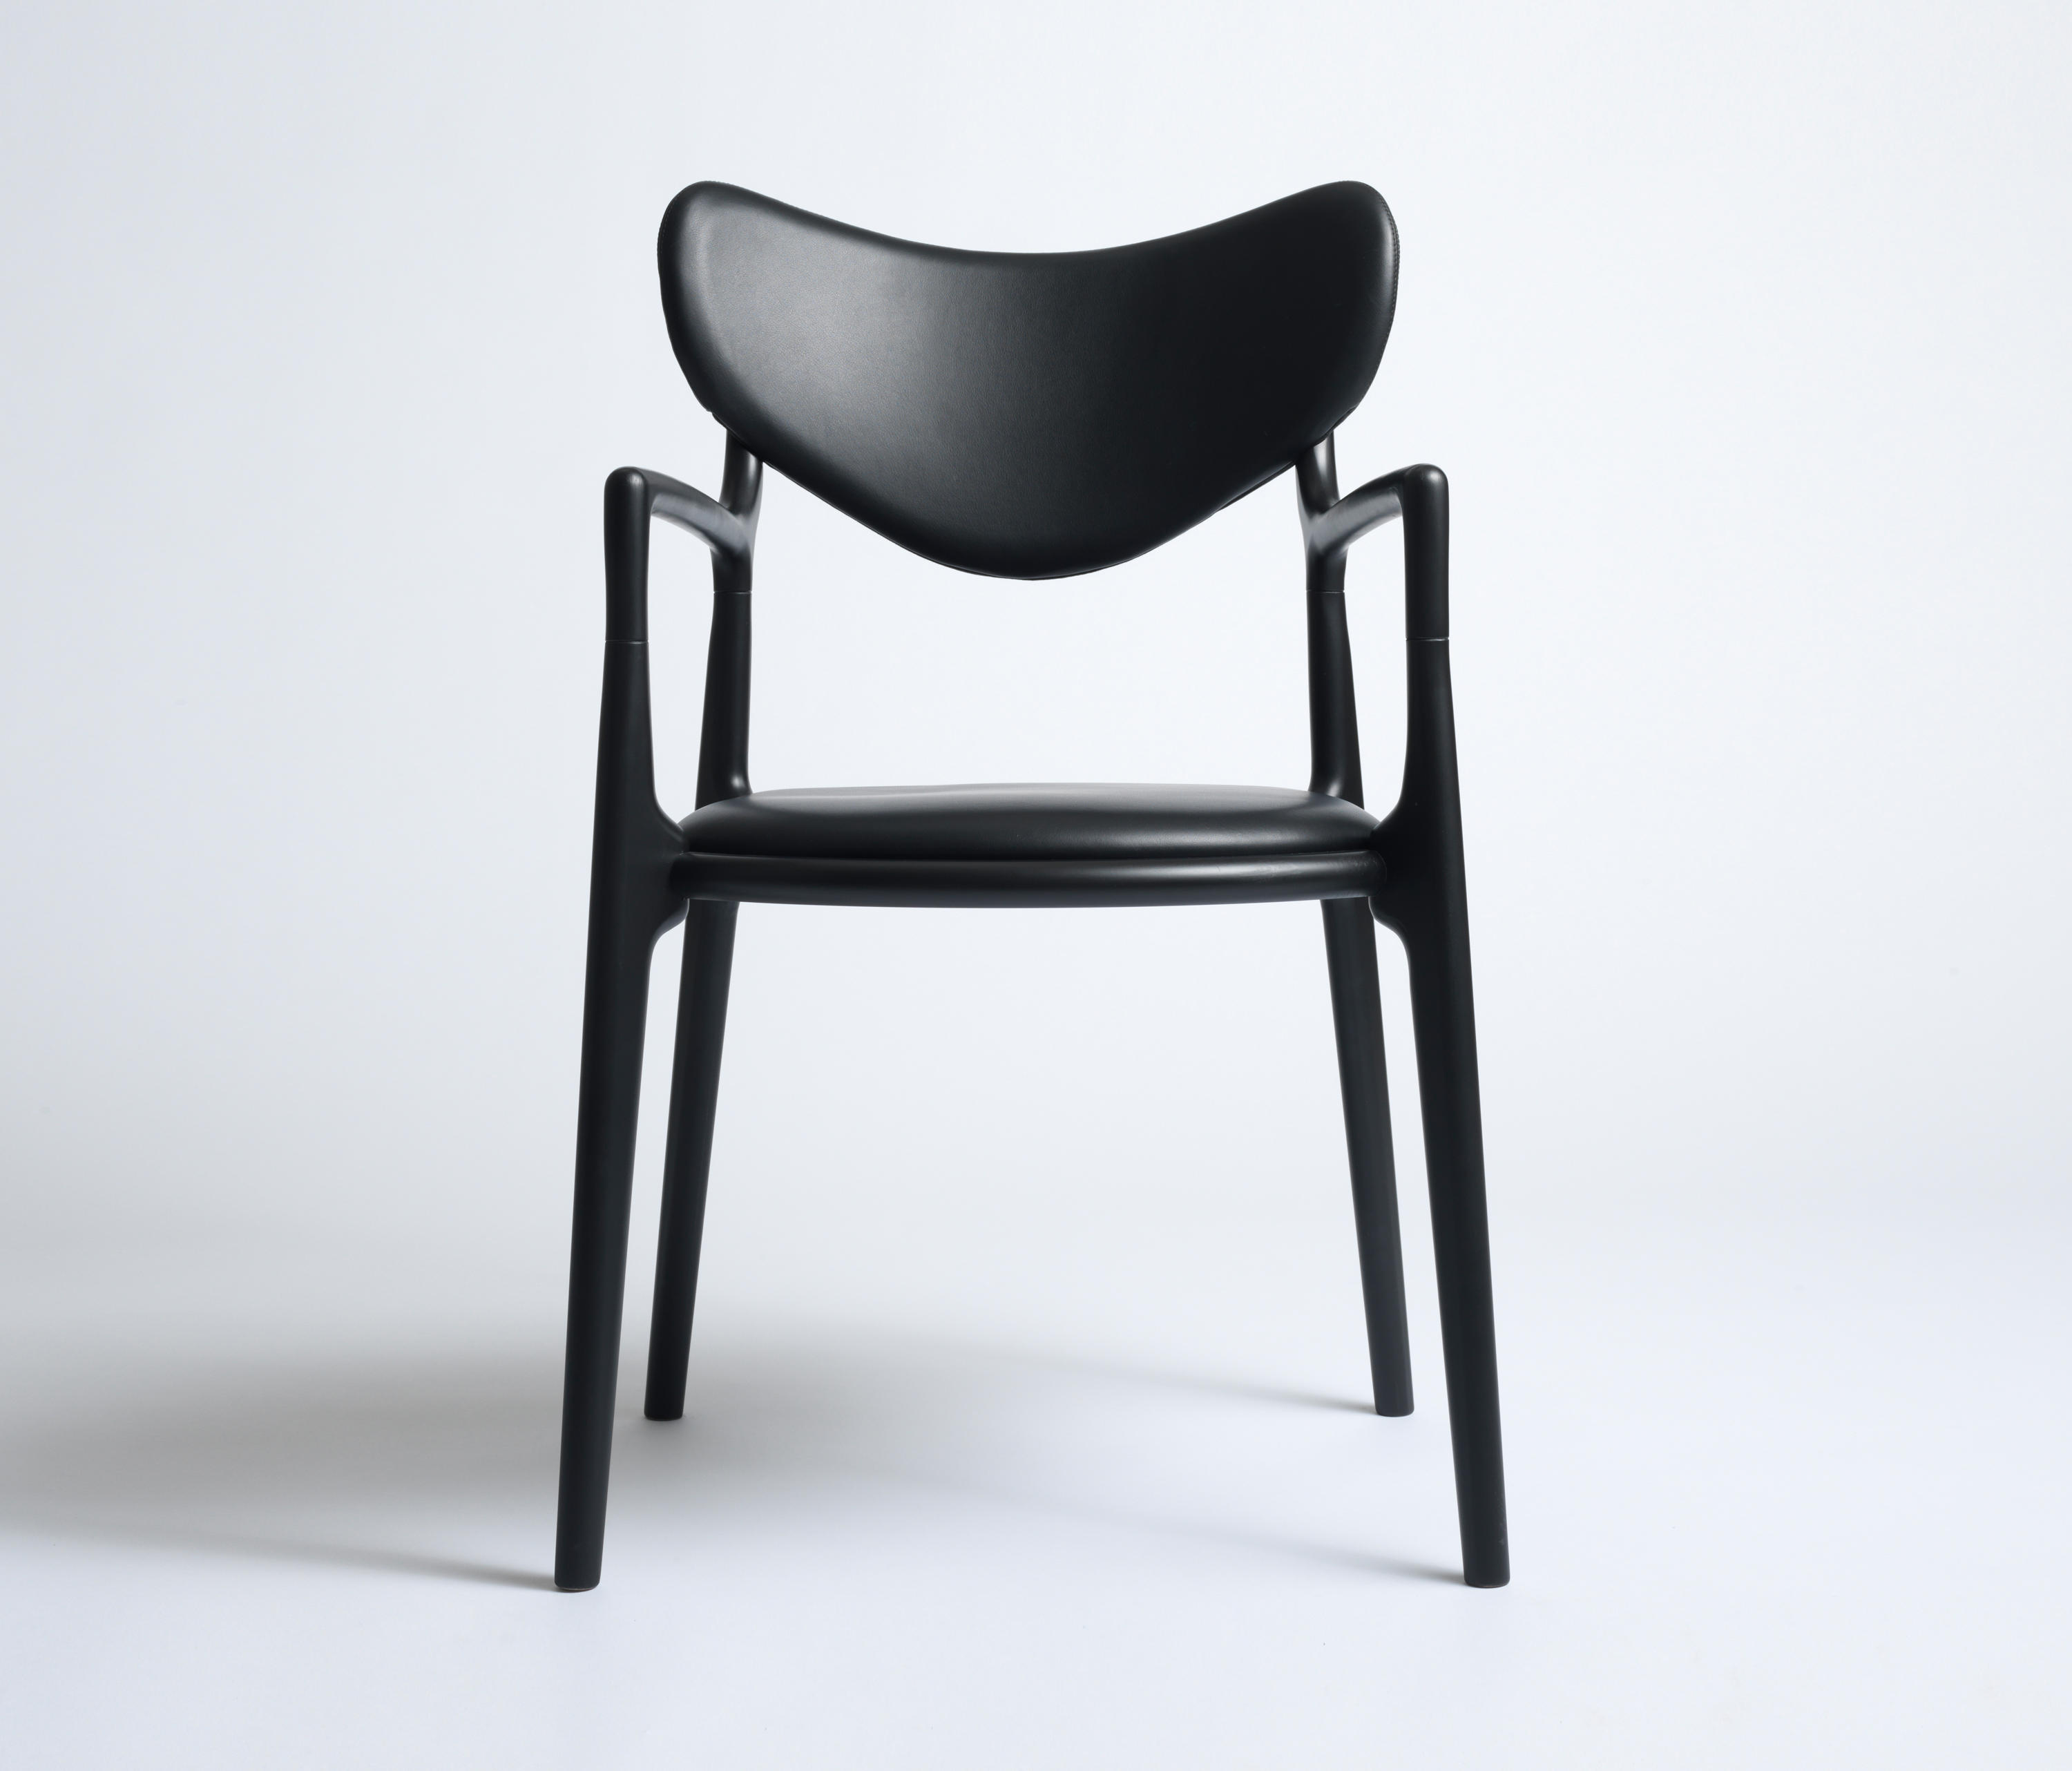 SALON CHAIR - BEECH BLACK - Chairs from True North Designs